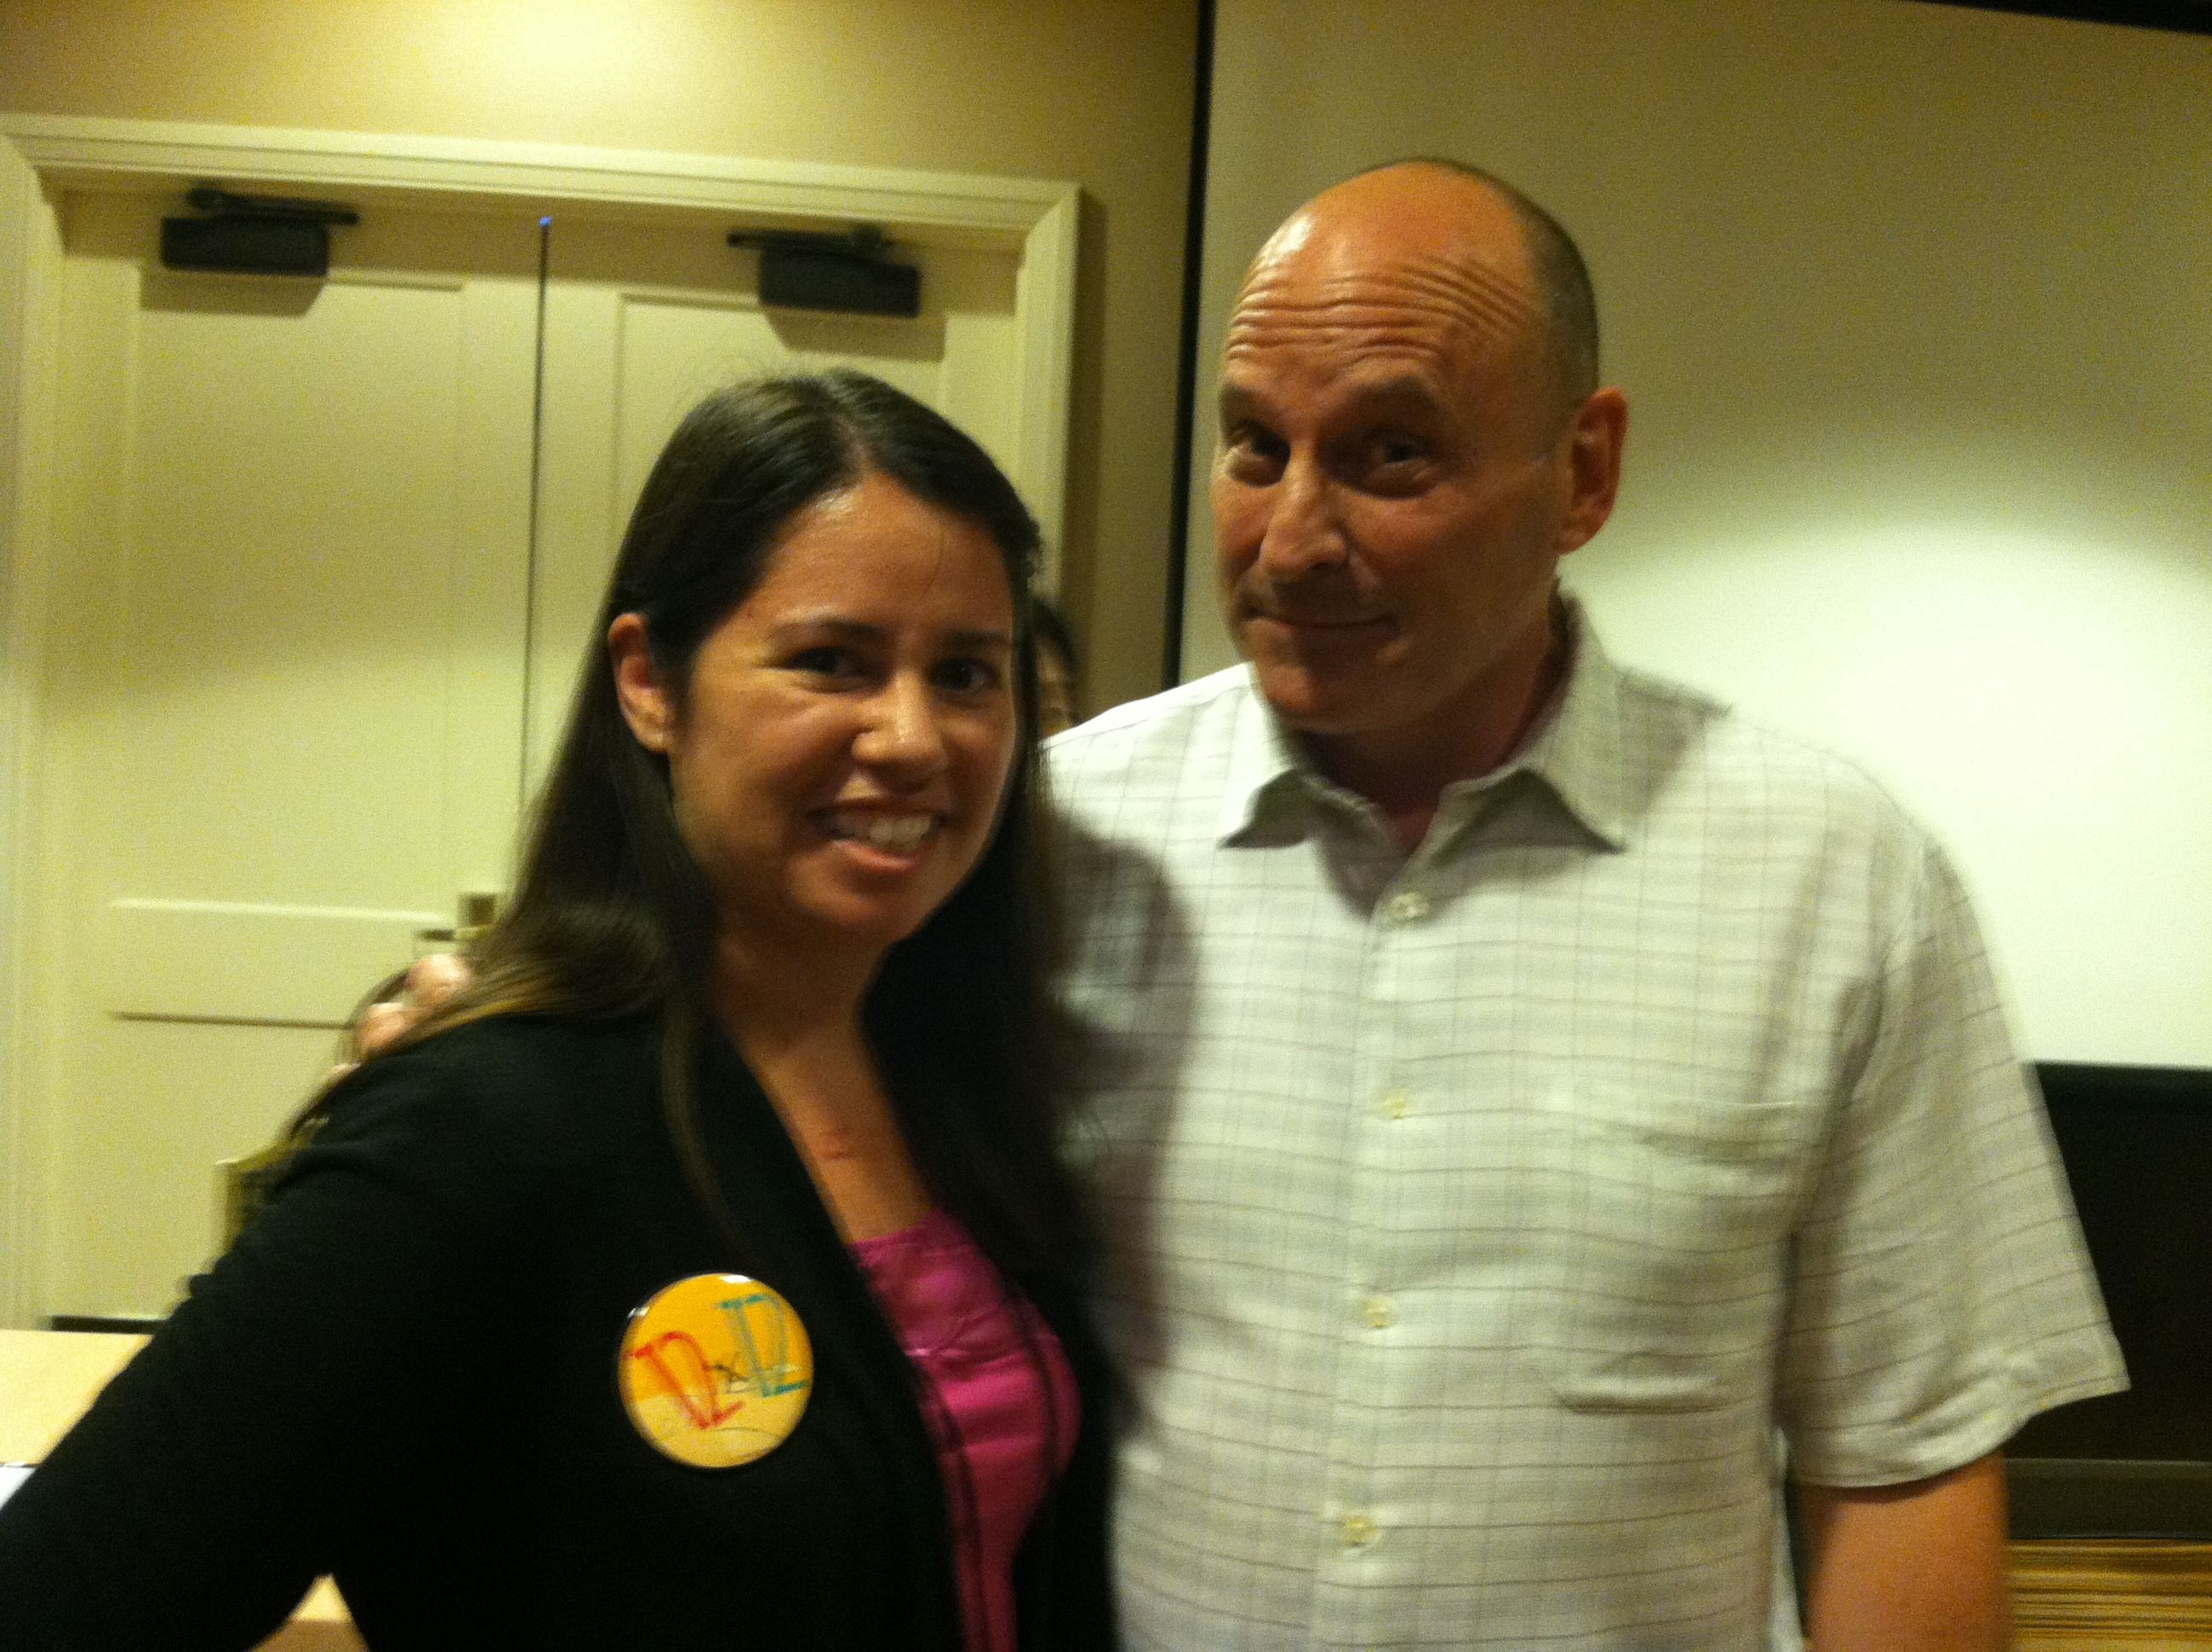 I met Jon Sciescka at the 2013 Summer SCBWI Conference.